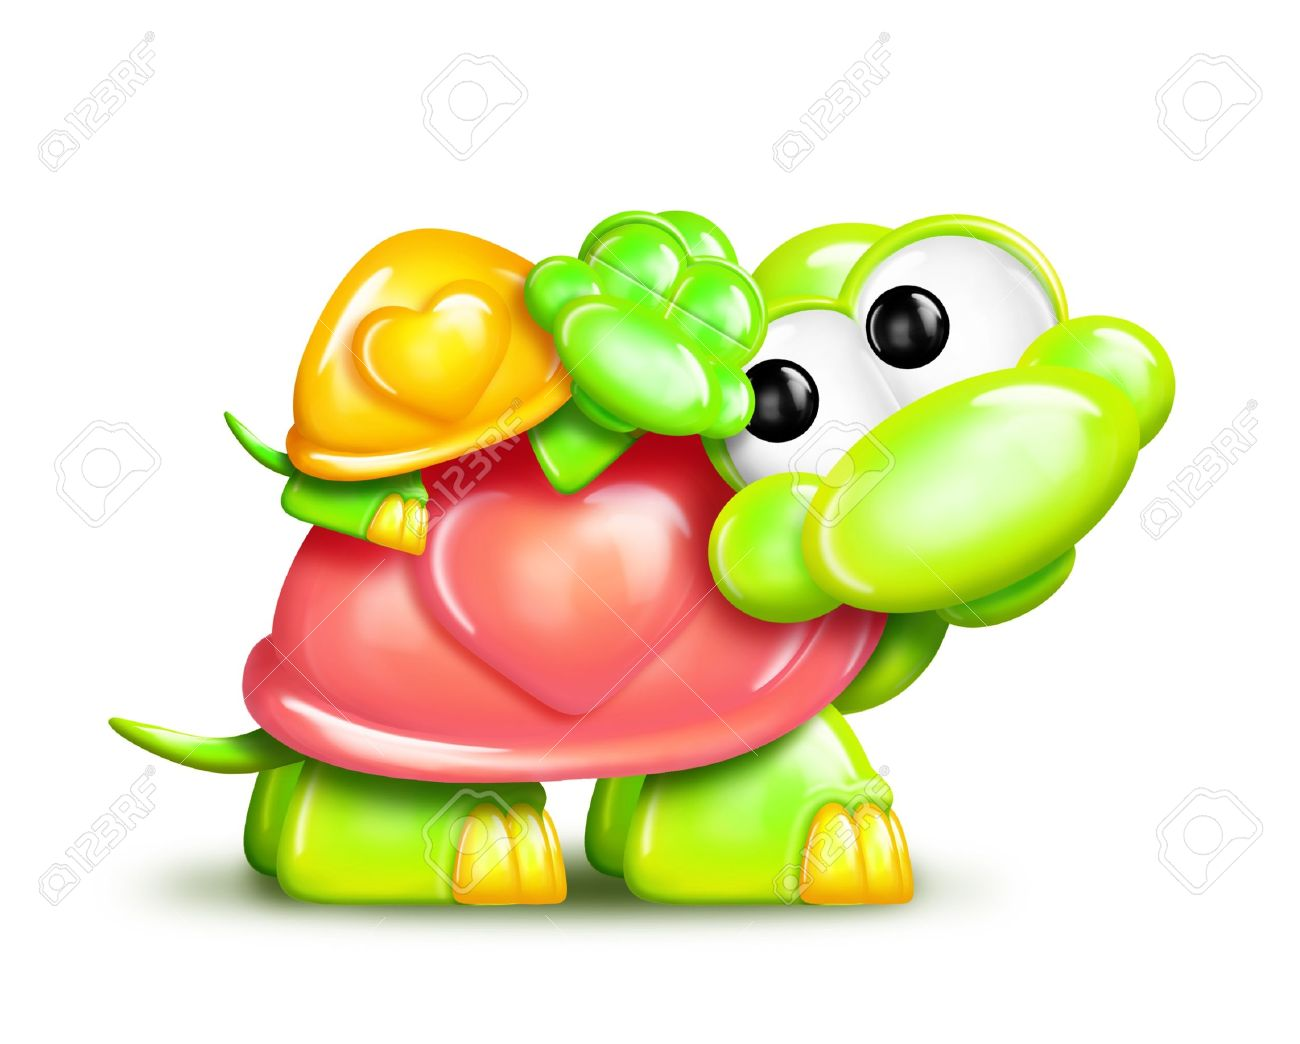 Turtle clipart mother and baby #15